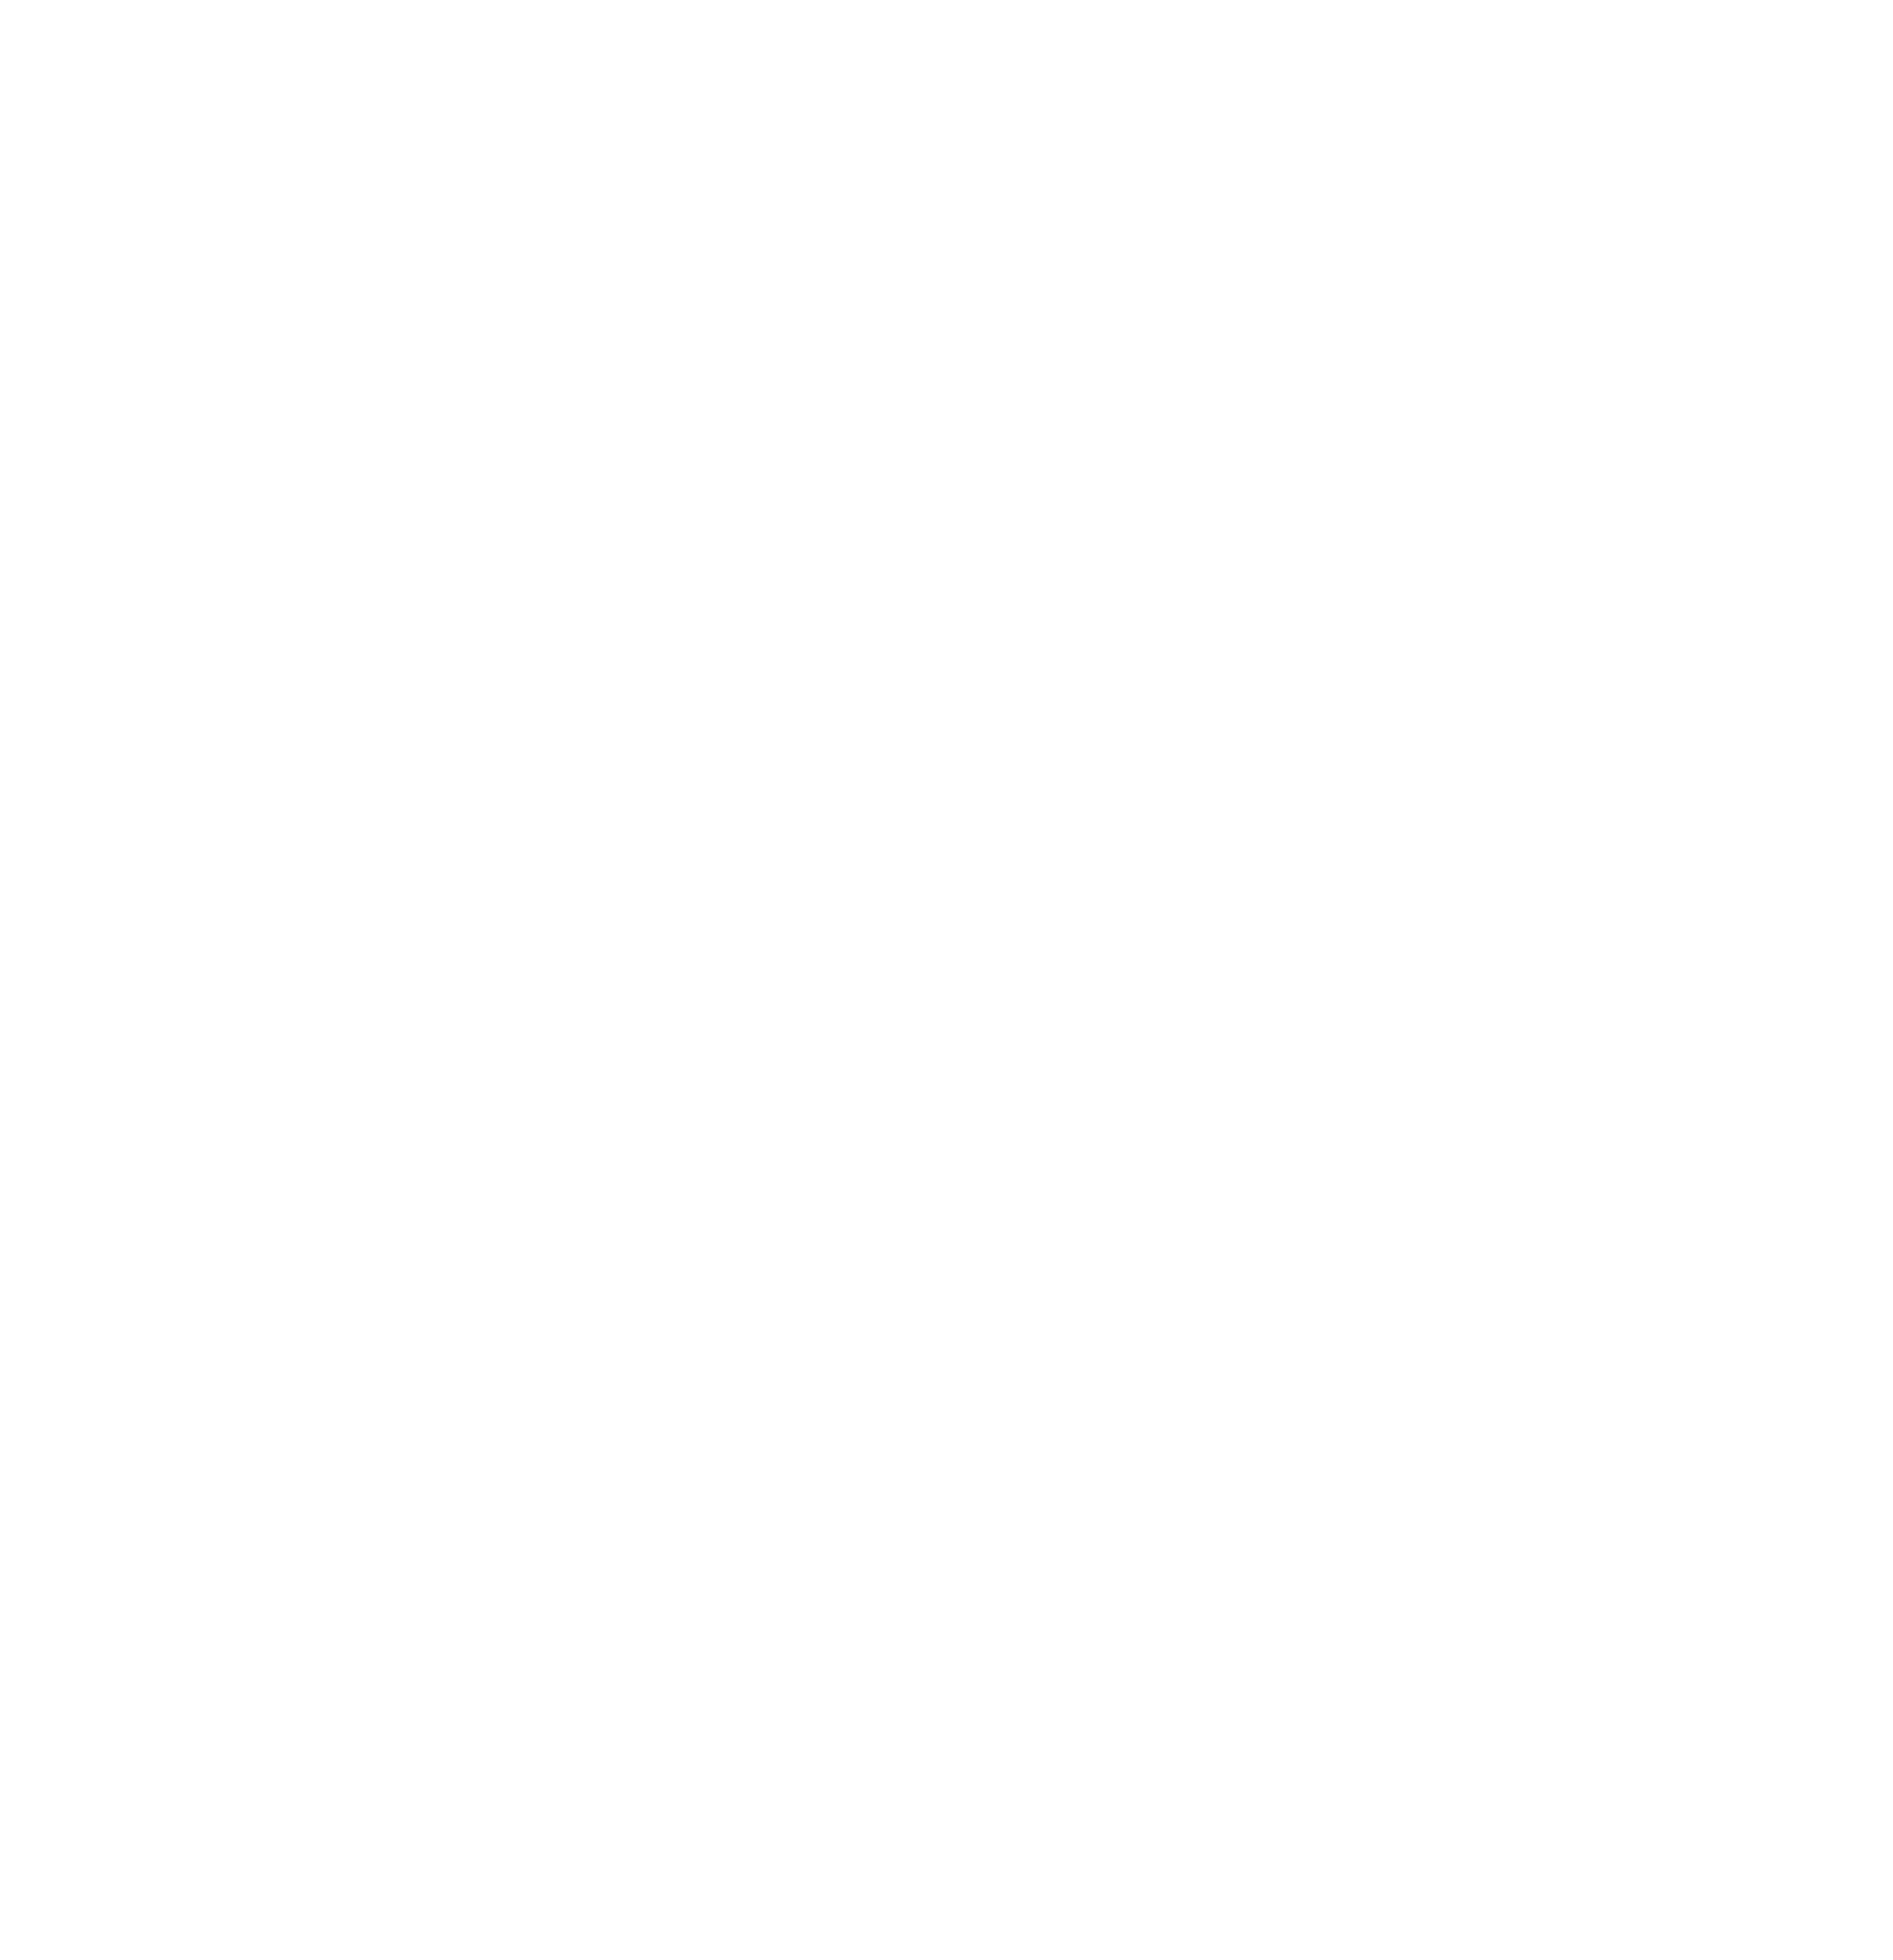 Berlins Neue Kinder BNK - Media Agency for the Now